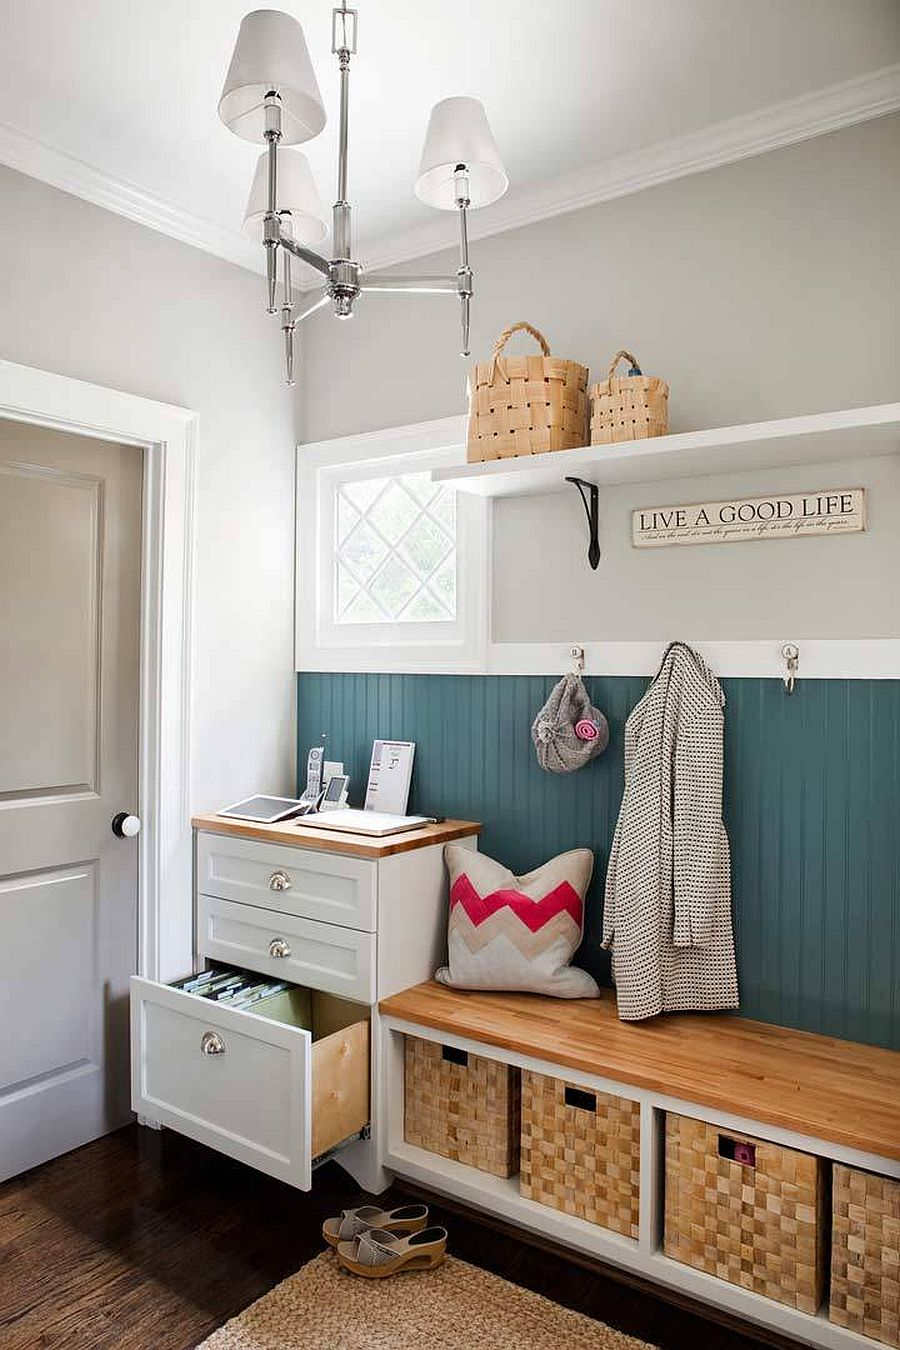 Using baskets in the space underneath the bench give you more felxible storage options in the mudroom